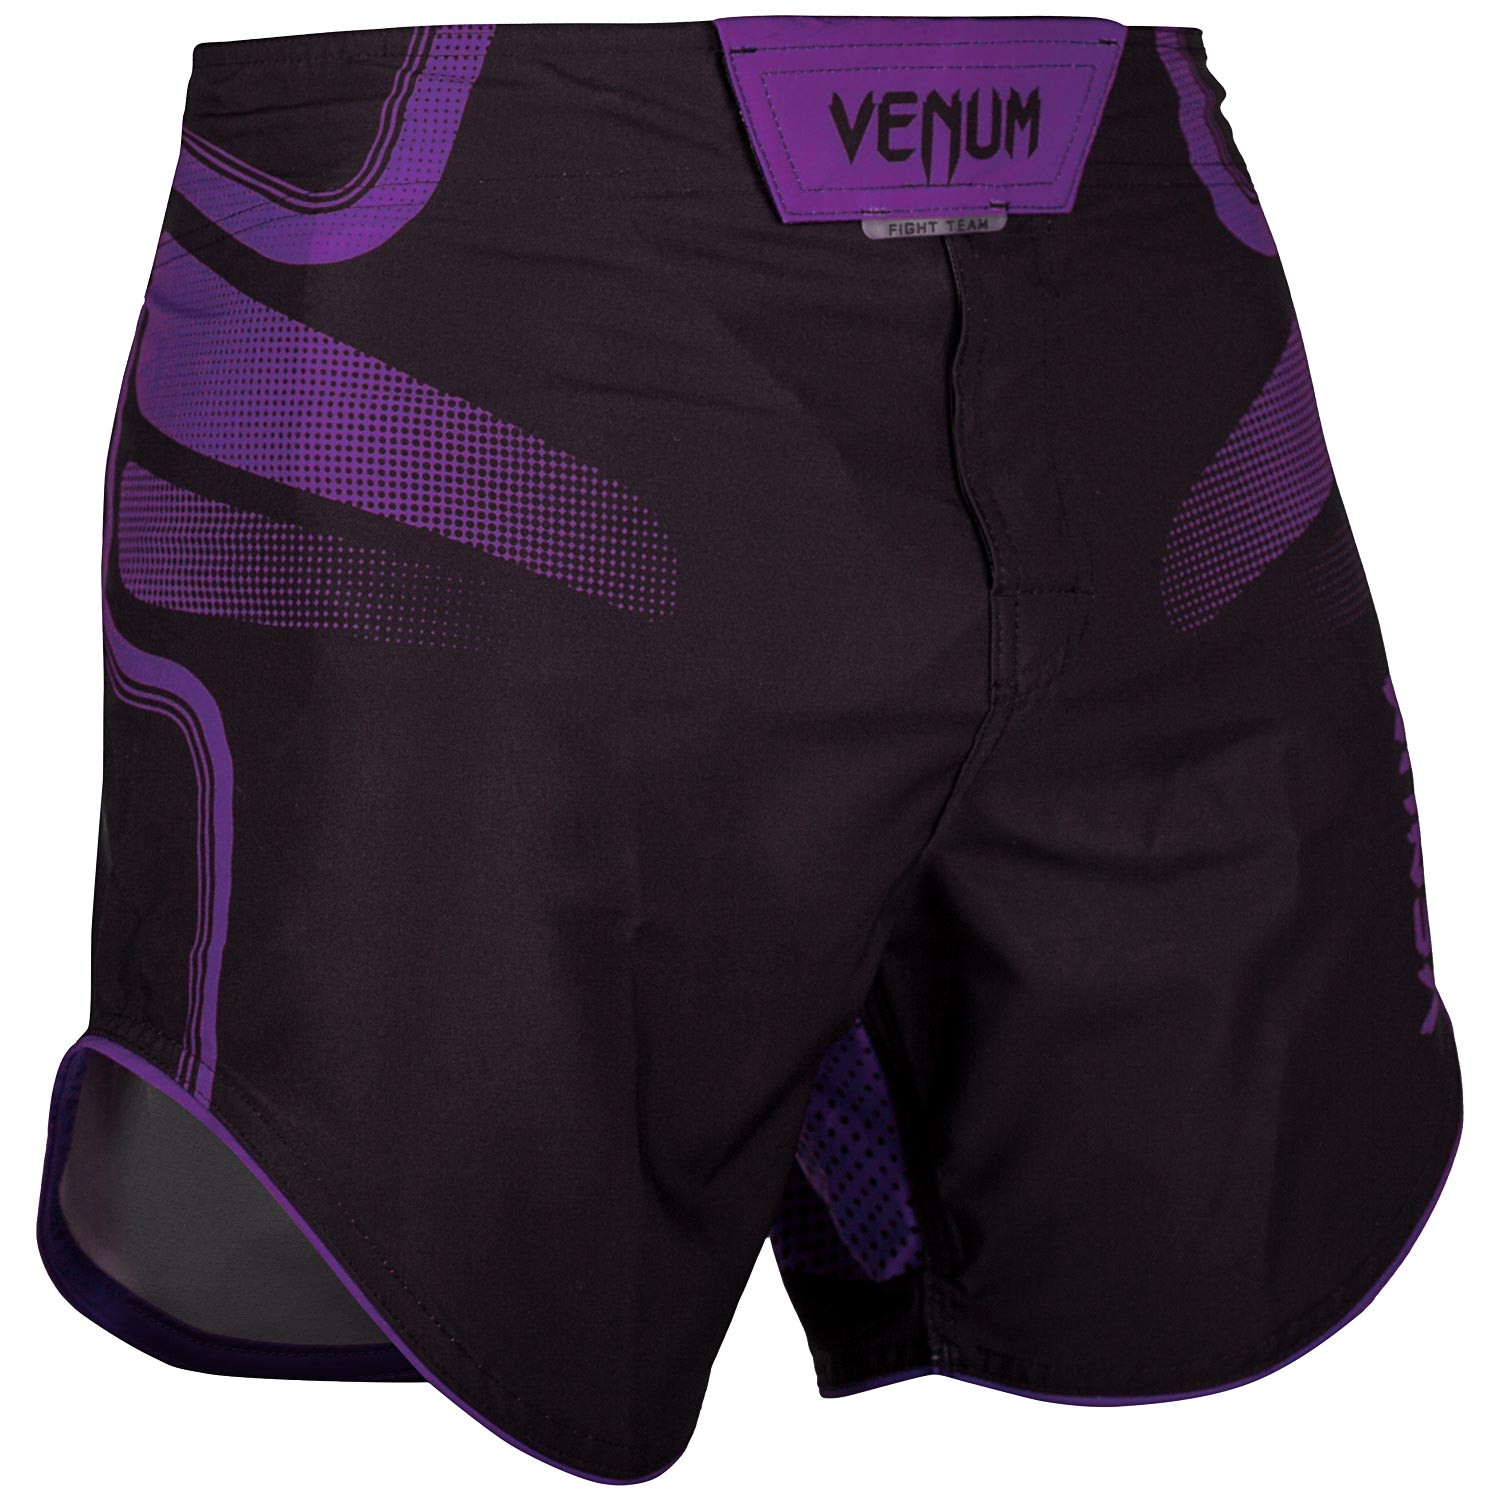 Шорты ММА Venum Tempest 2.0 Black/Purple